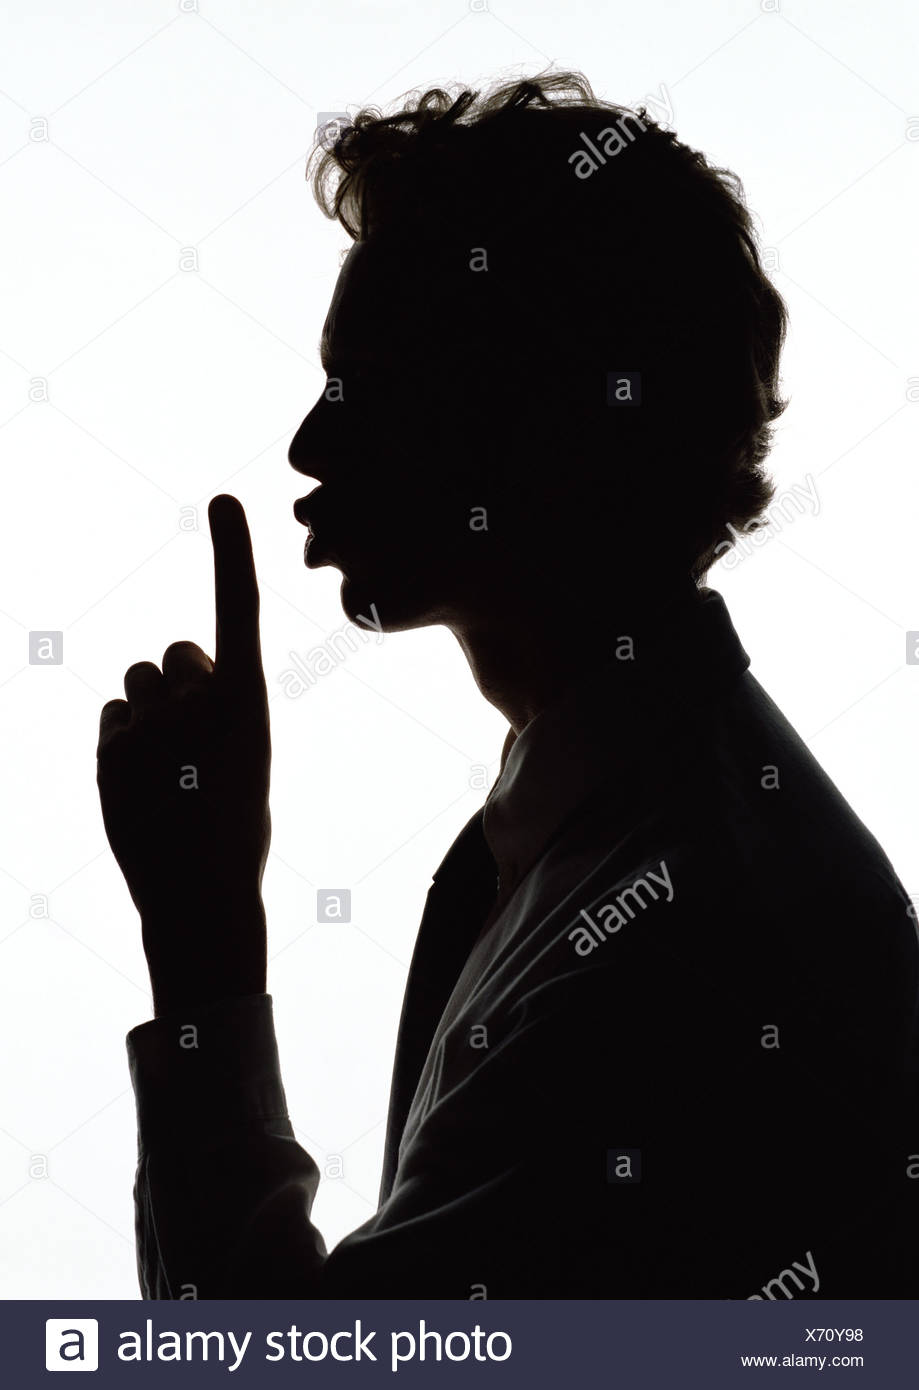 Man holding finger out in front of lips, silhouette. - Stock Image